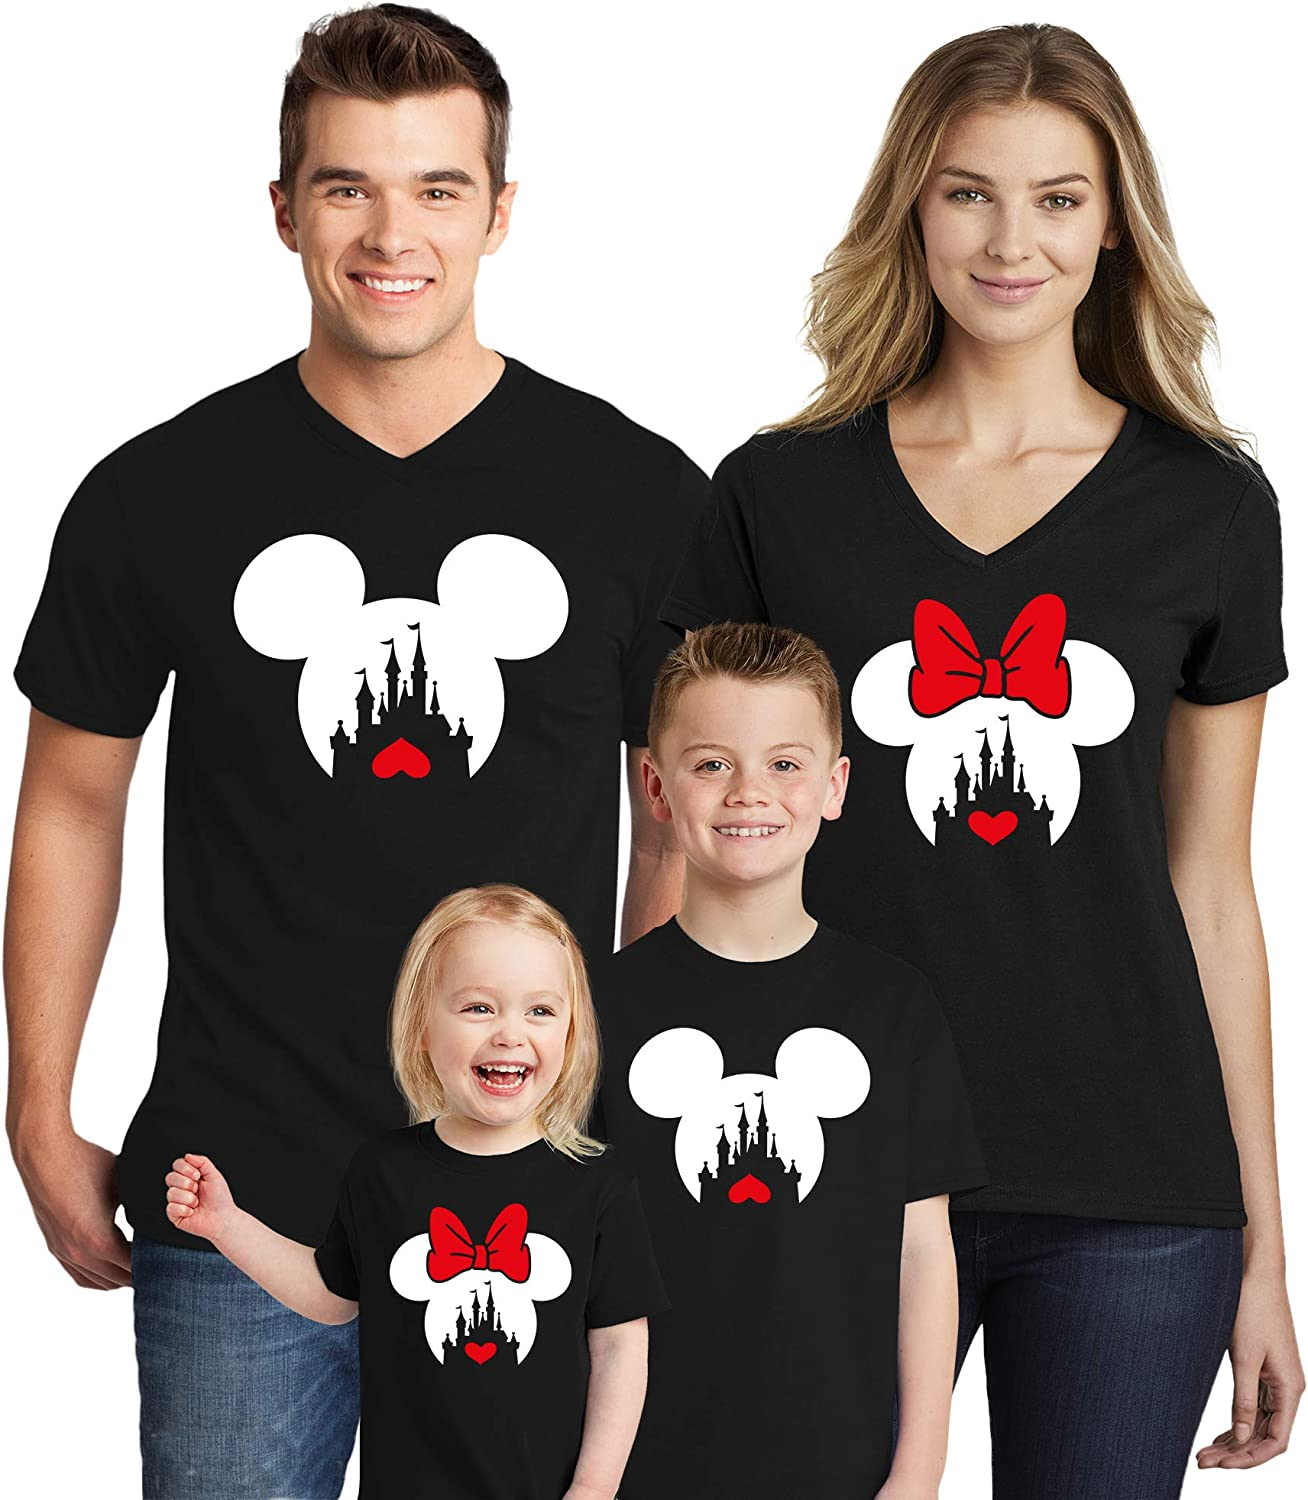 B07NTS4H1G Natural Underwear Family Trip #2 Mickey Mouse Minnie Mouse with Heart Family Vacation 2020 Couple Matching Crew Round Neck T Shirts Black Kids-Girls 4T 71xY026WIJL